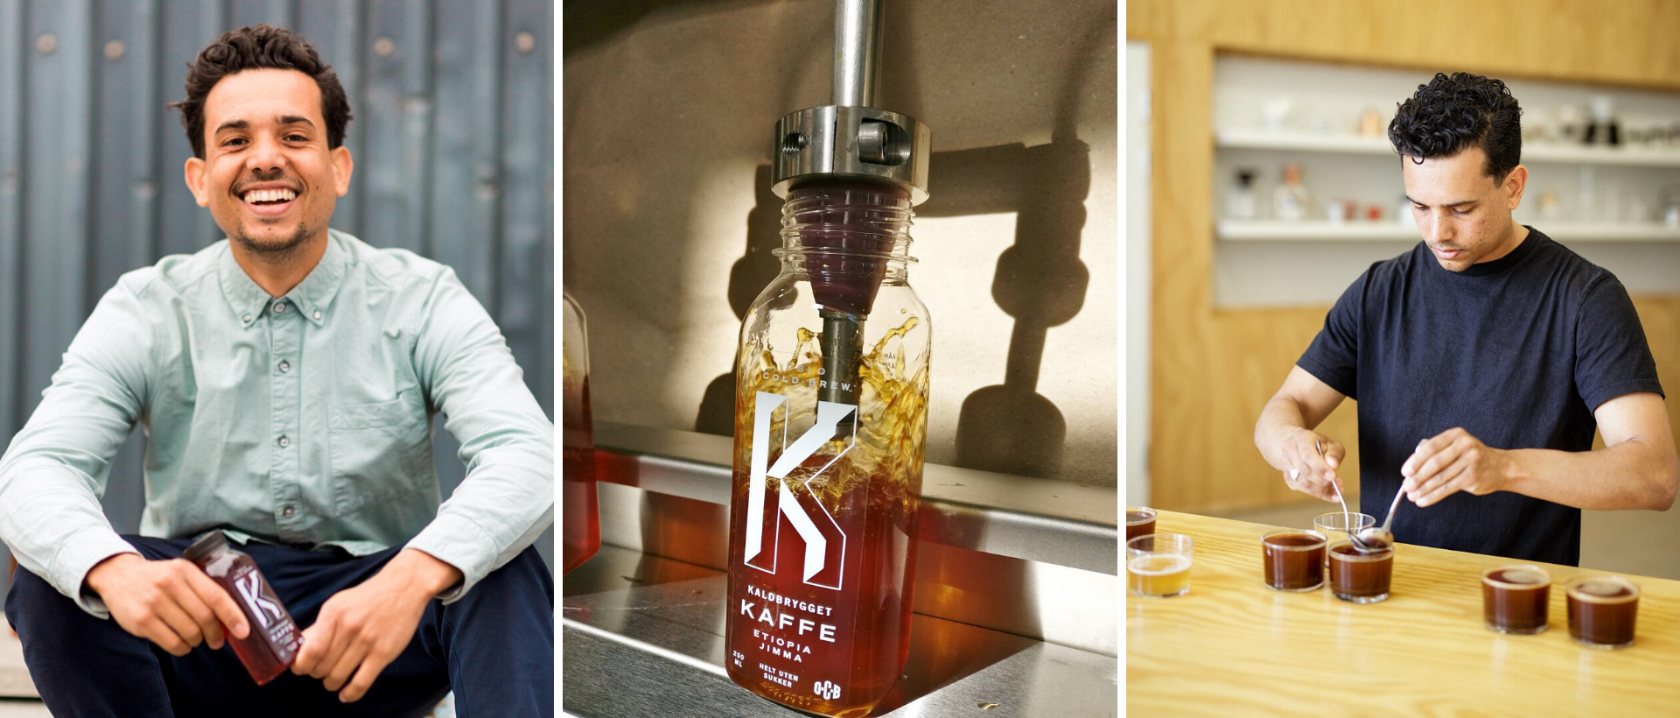 Meet Rory Rosenberg: Creator of Oslo Cold Brew